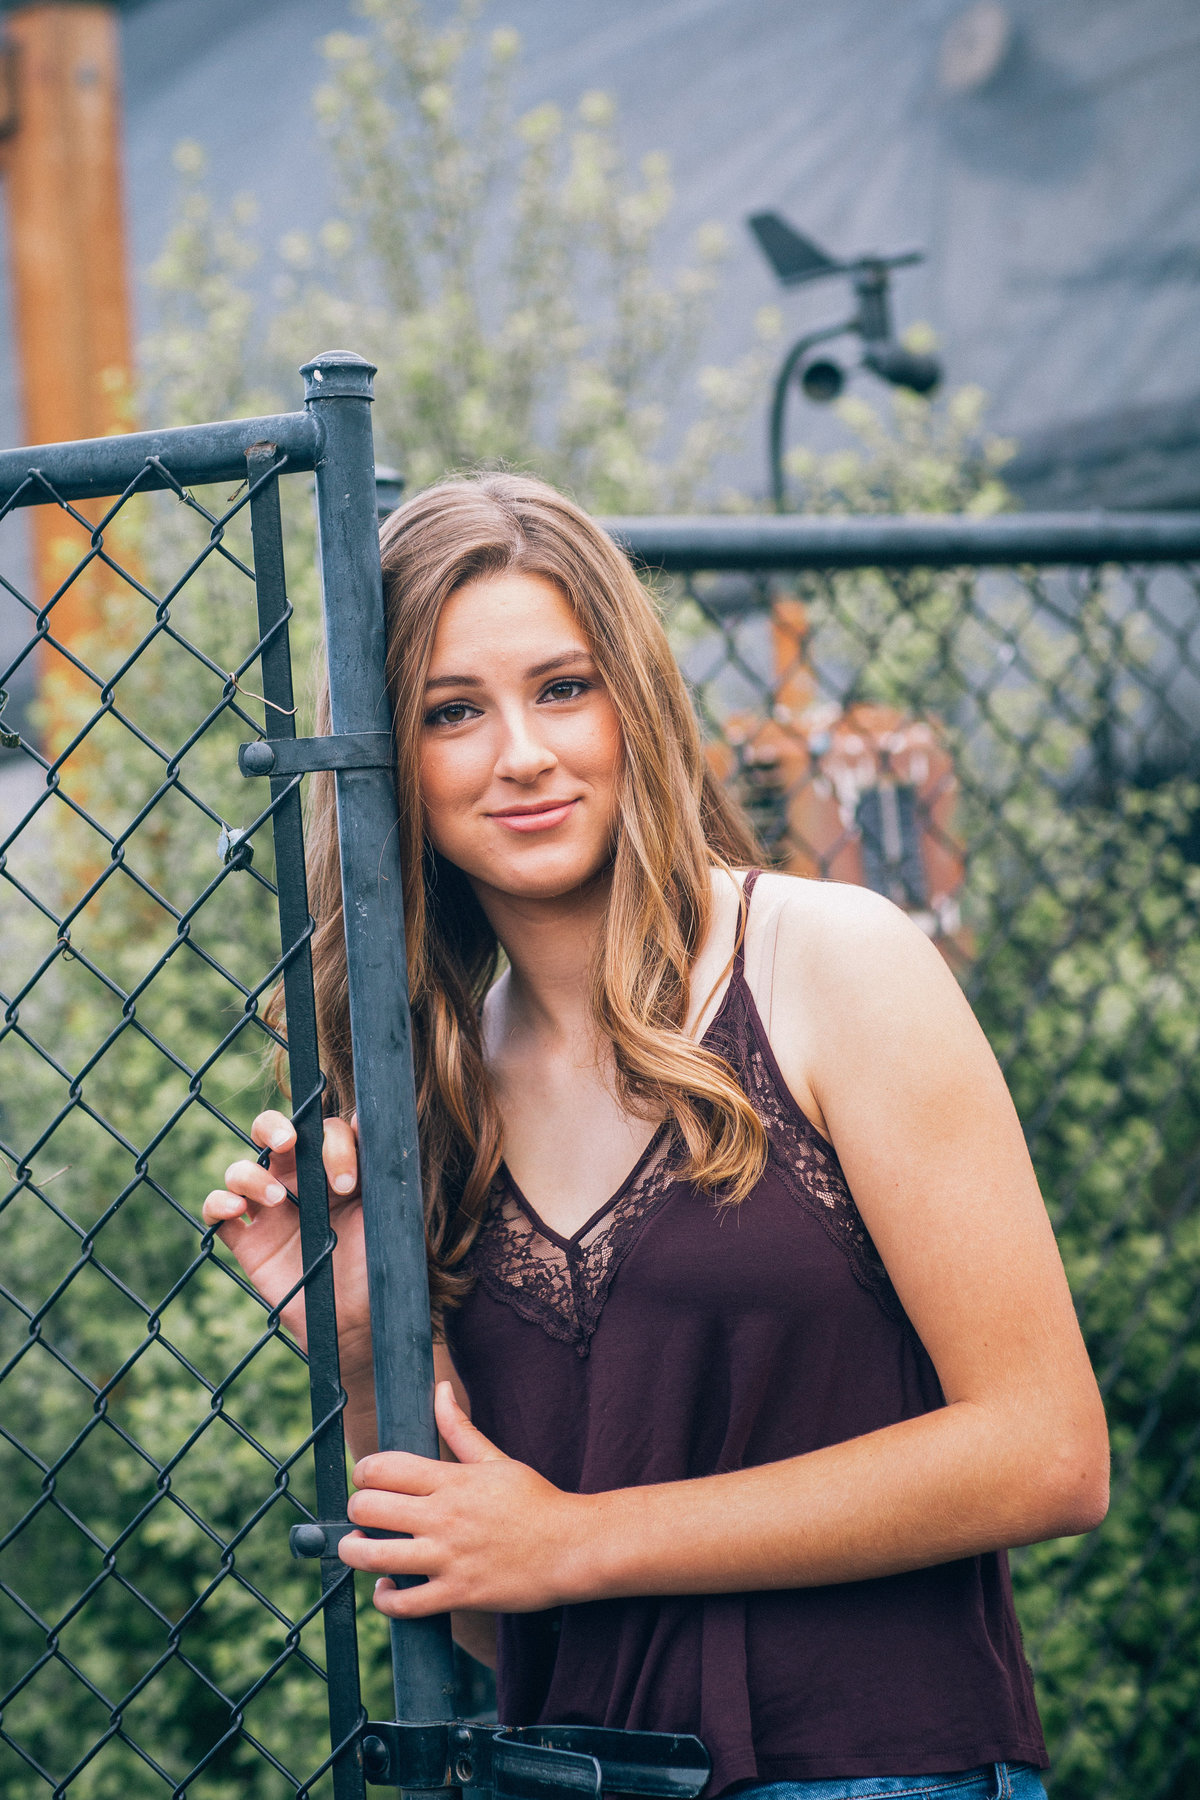 Lake Oswego Senior pictures at Park with Fence